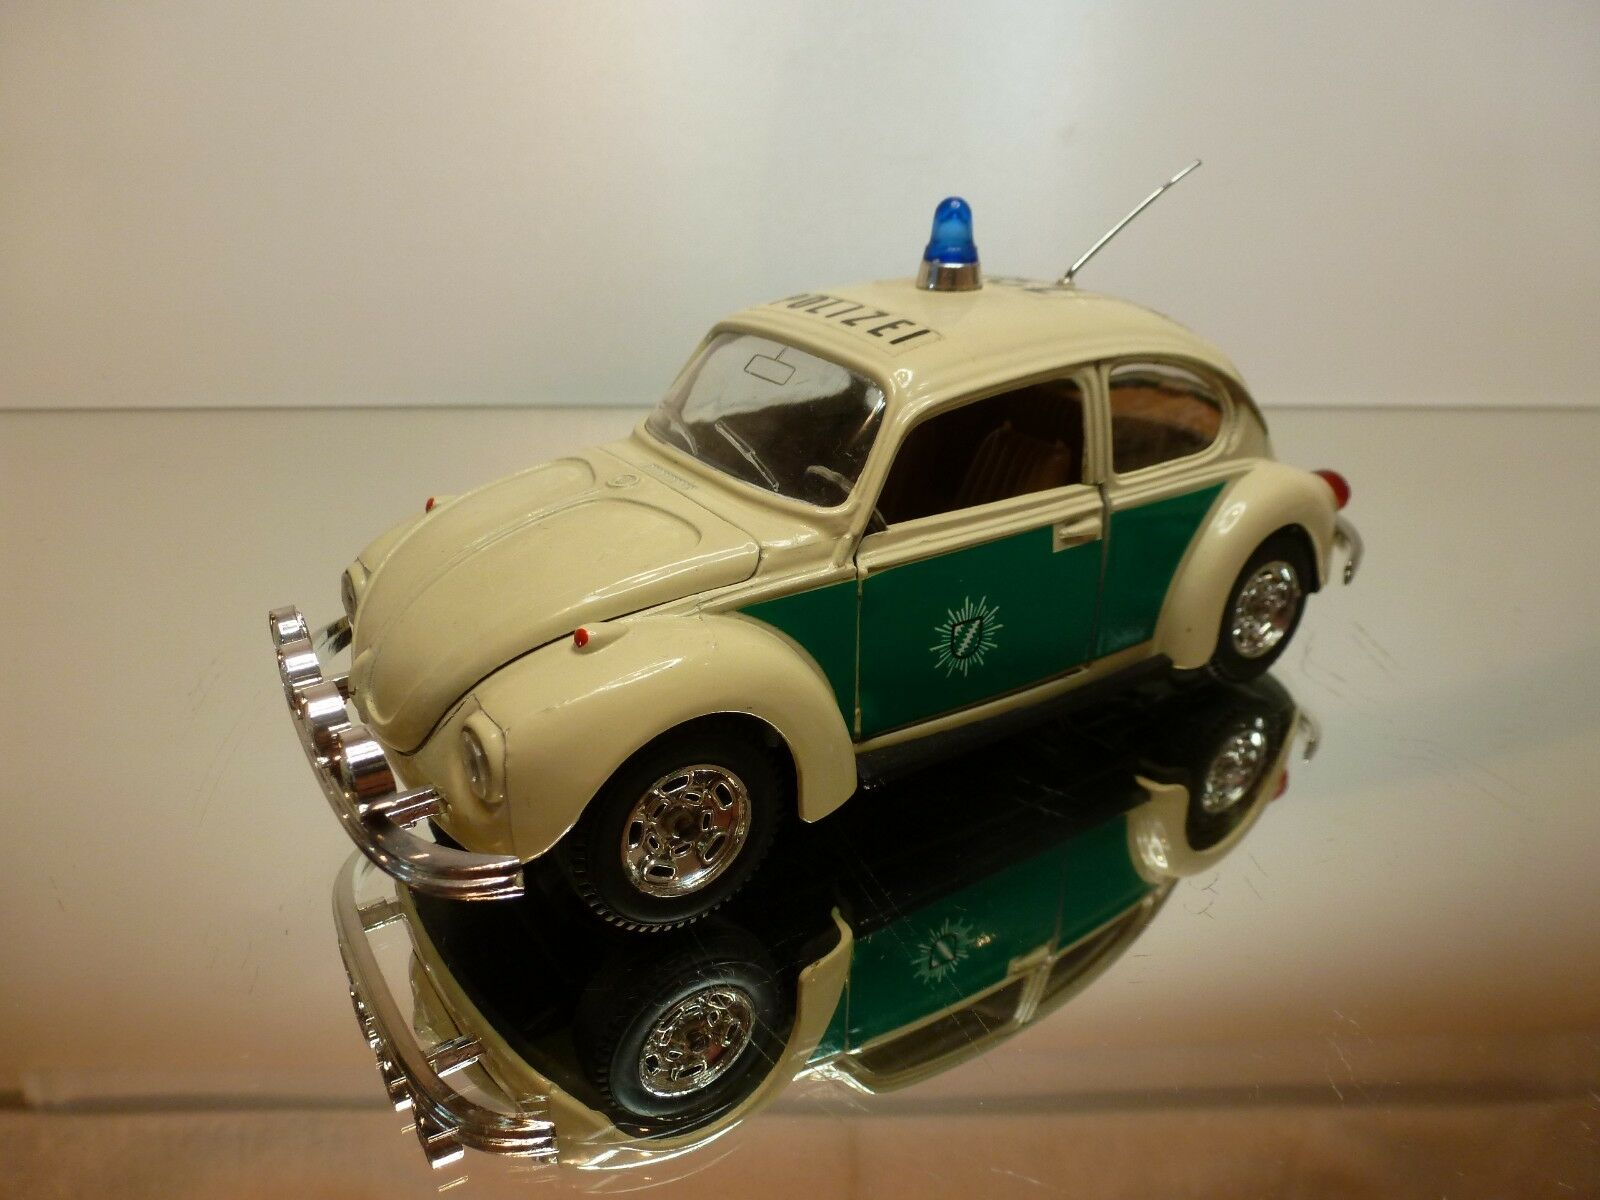 nuevo sádico MEBETOYS 8567 8567 8567 VW VOLKSWAGEN BEETLE POLIZEI - CREAM 1 25 - VERY GOOD CONDITION  entrega gratis